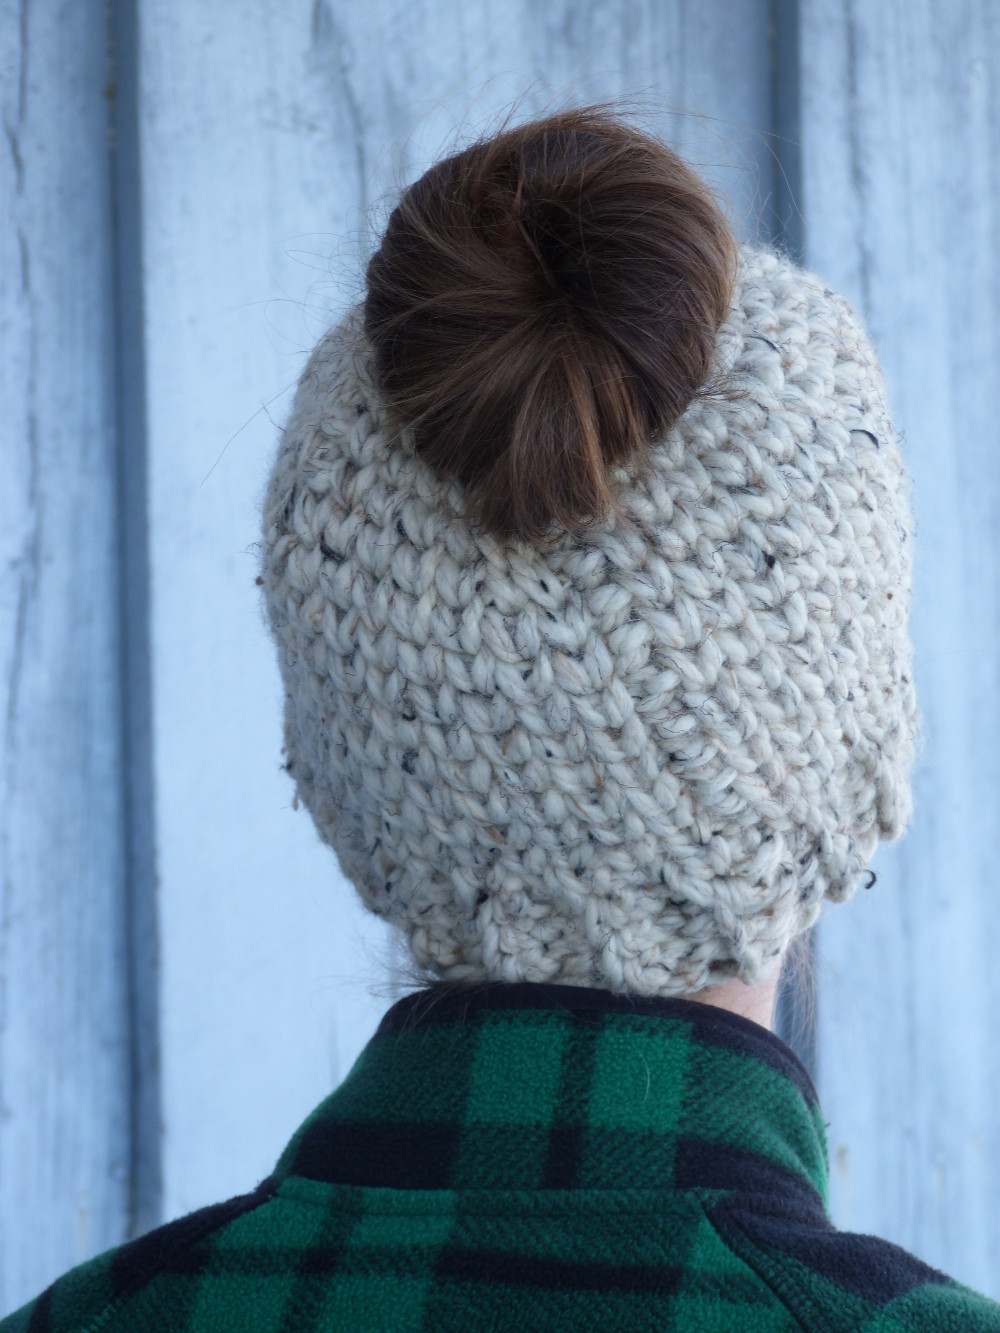 Awesome Crochet Spot Blog Archive Free Crochet Pattern Chunky Bun Beanie Crochet Pattern Of Charming 42 Pics Bun Beanie Crochet Pattern